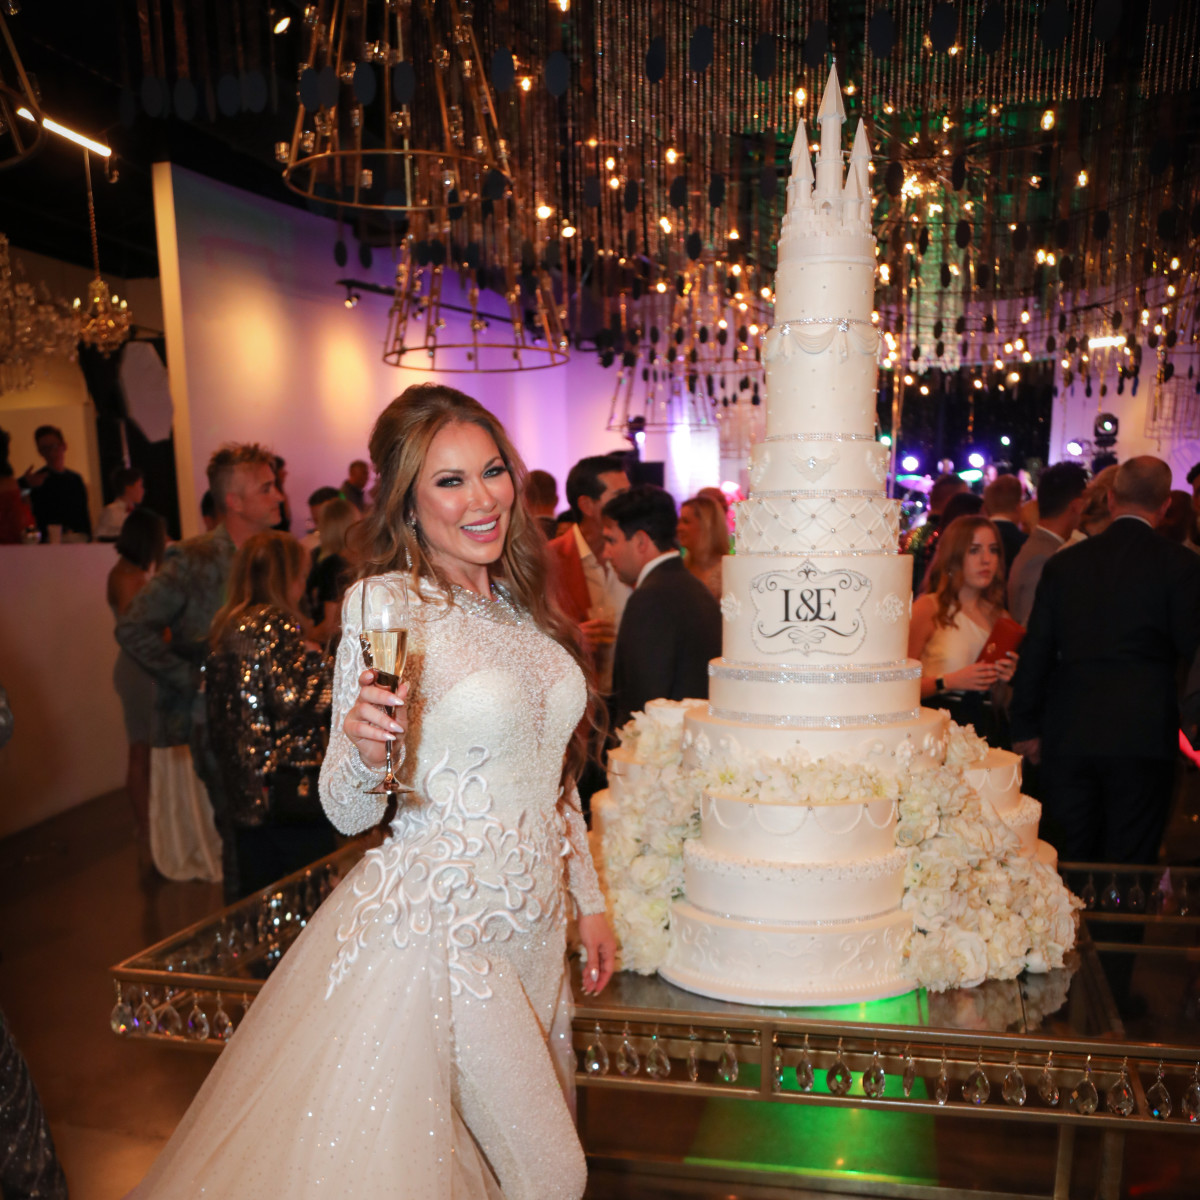 LeeAnne Locken wedding champagne cake